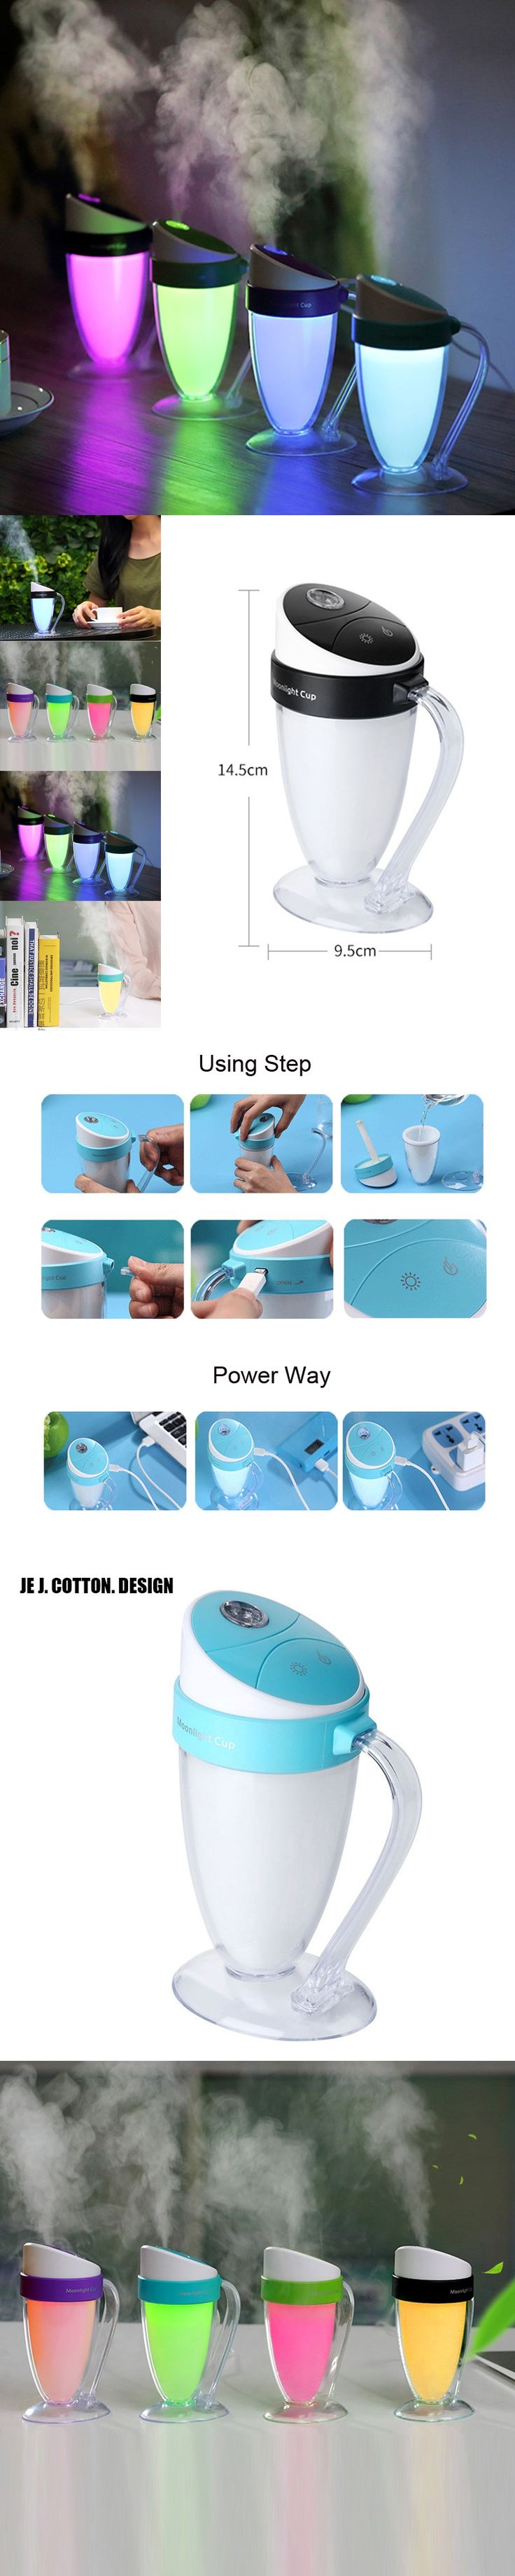 Best Beer Cup Air Humidifiers for Home Ultrasonic Humidifier Mist Maker with LED Night Light Air Freshener Aromatherapy Diffuser